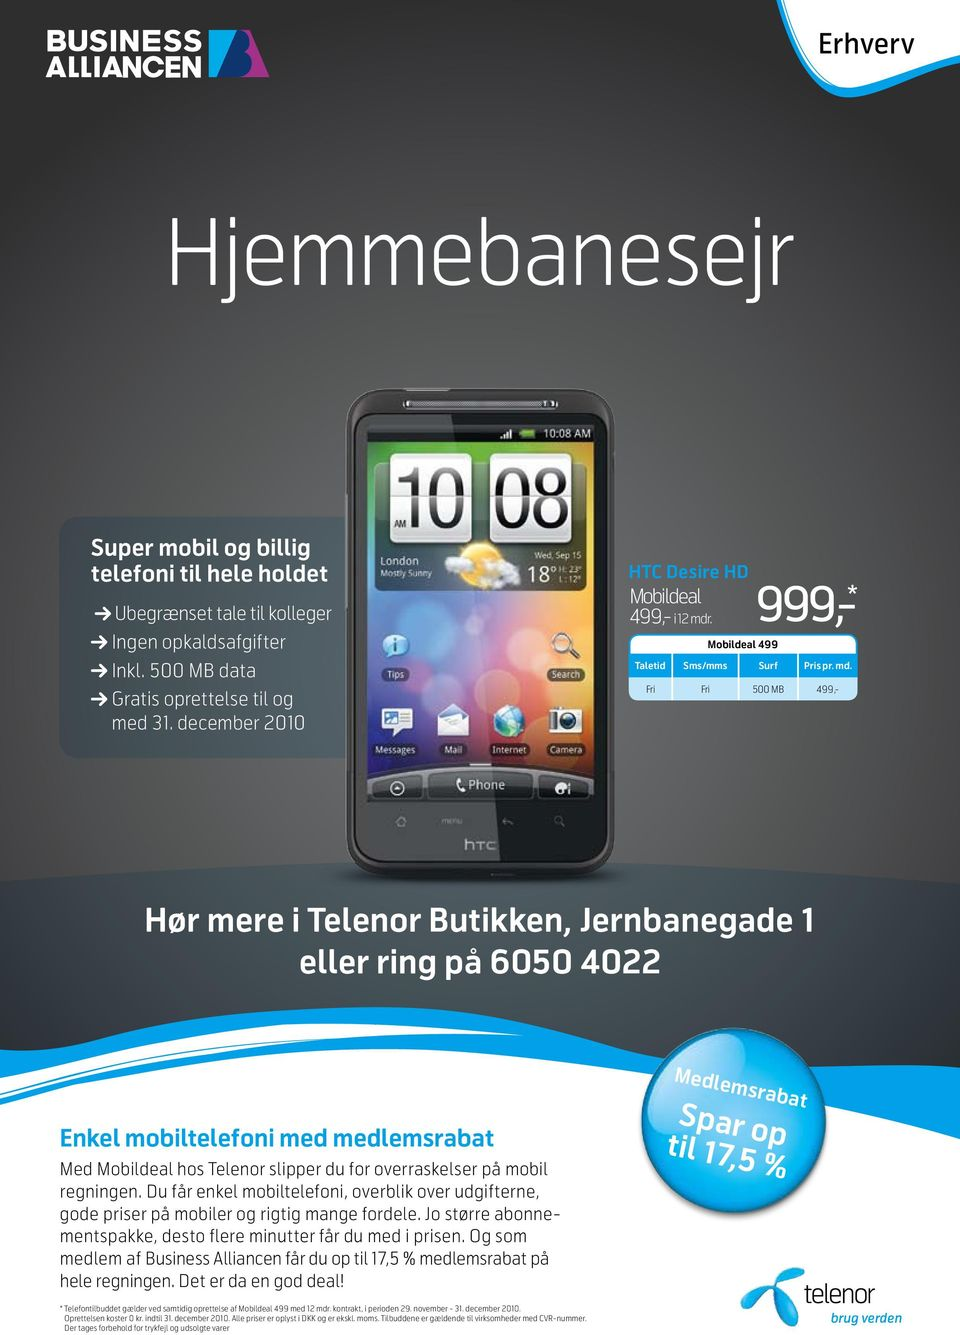 . Mobildeal 499 999,- * Taletid Sms/mms Surf Pris pr. md.